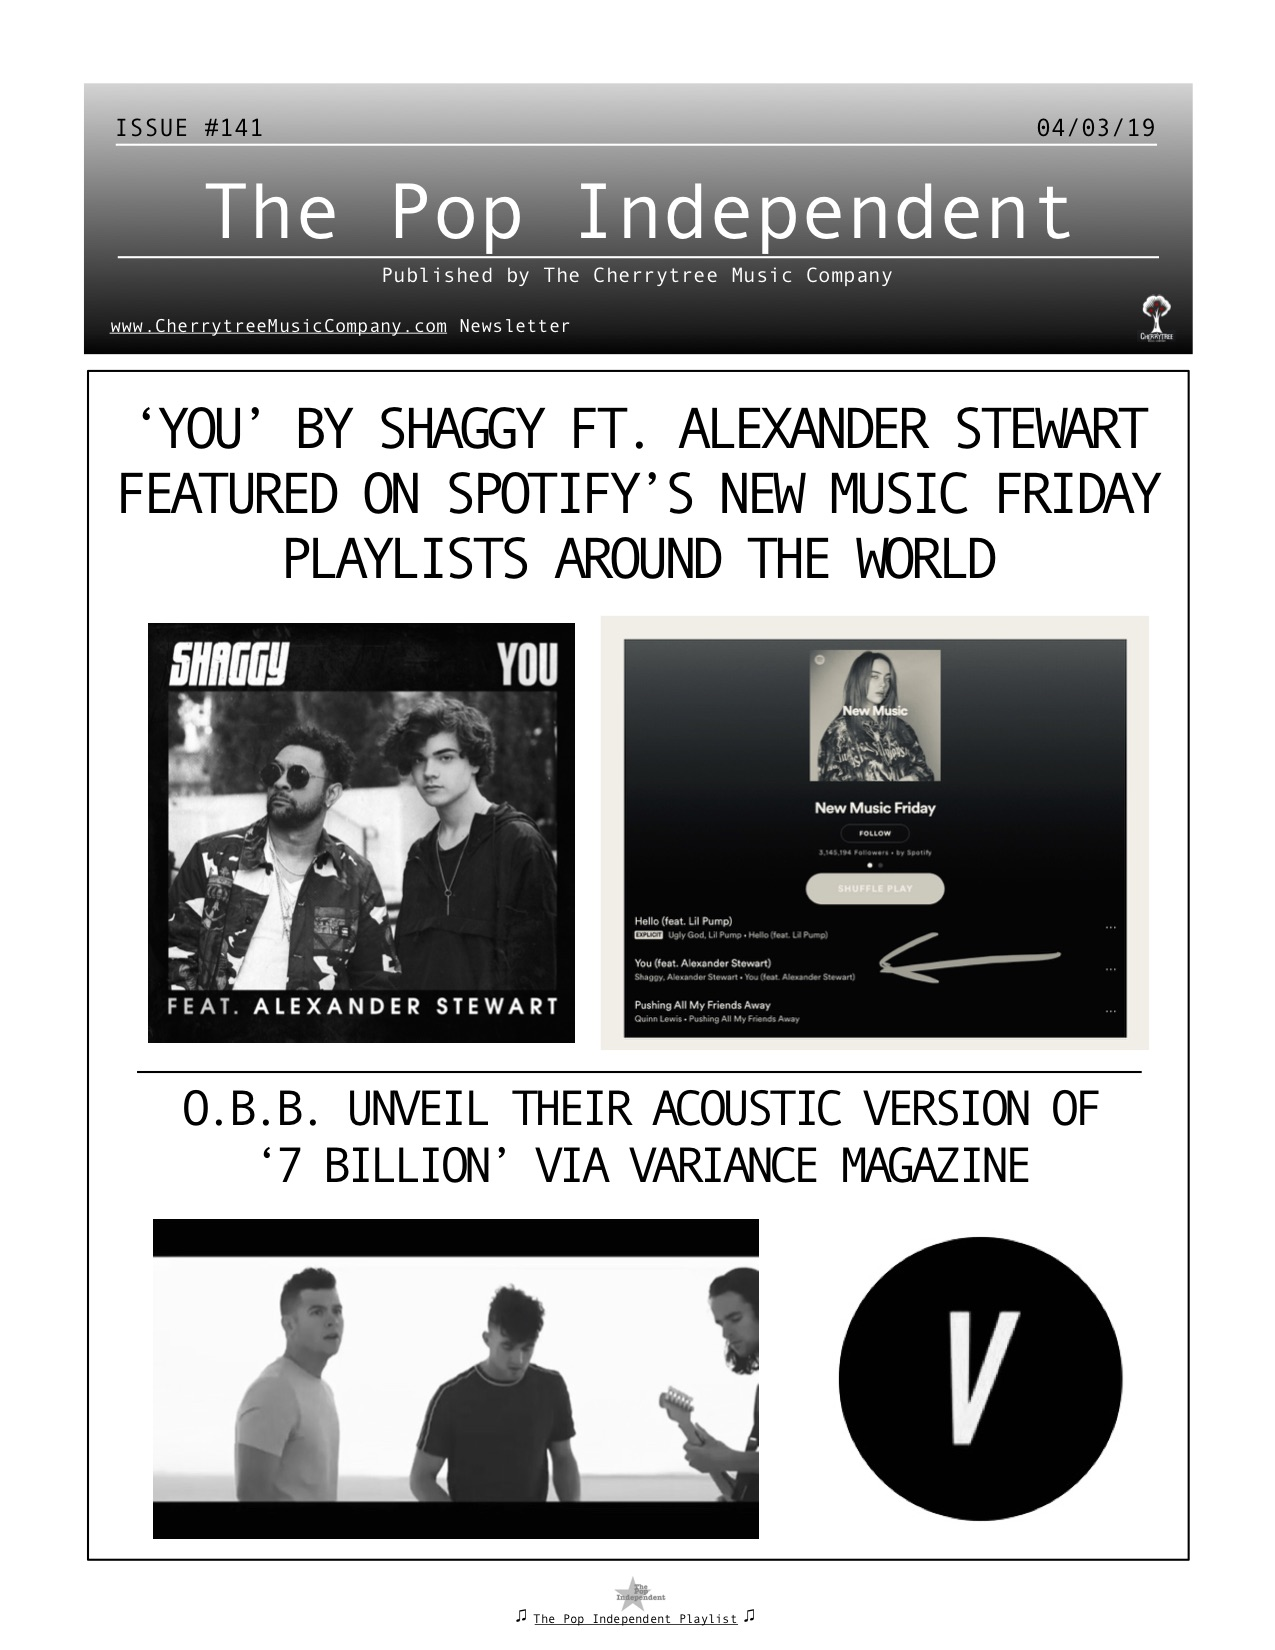 The Pop Independent, issue 141